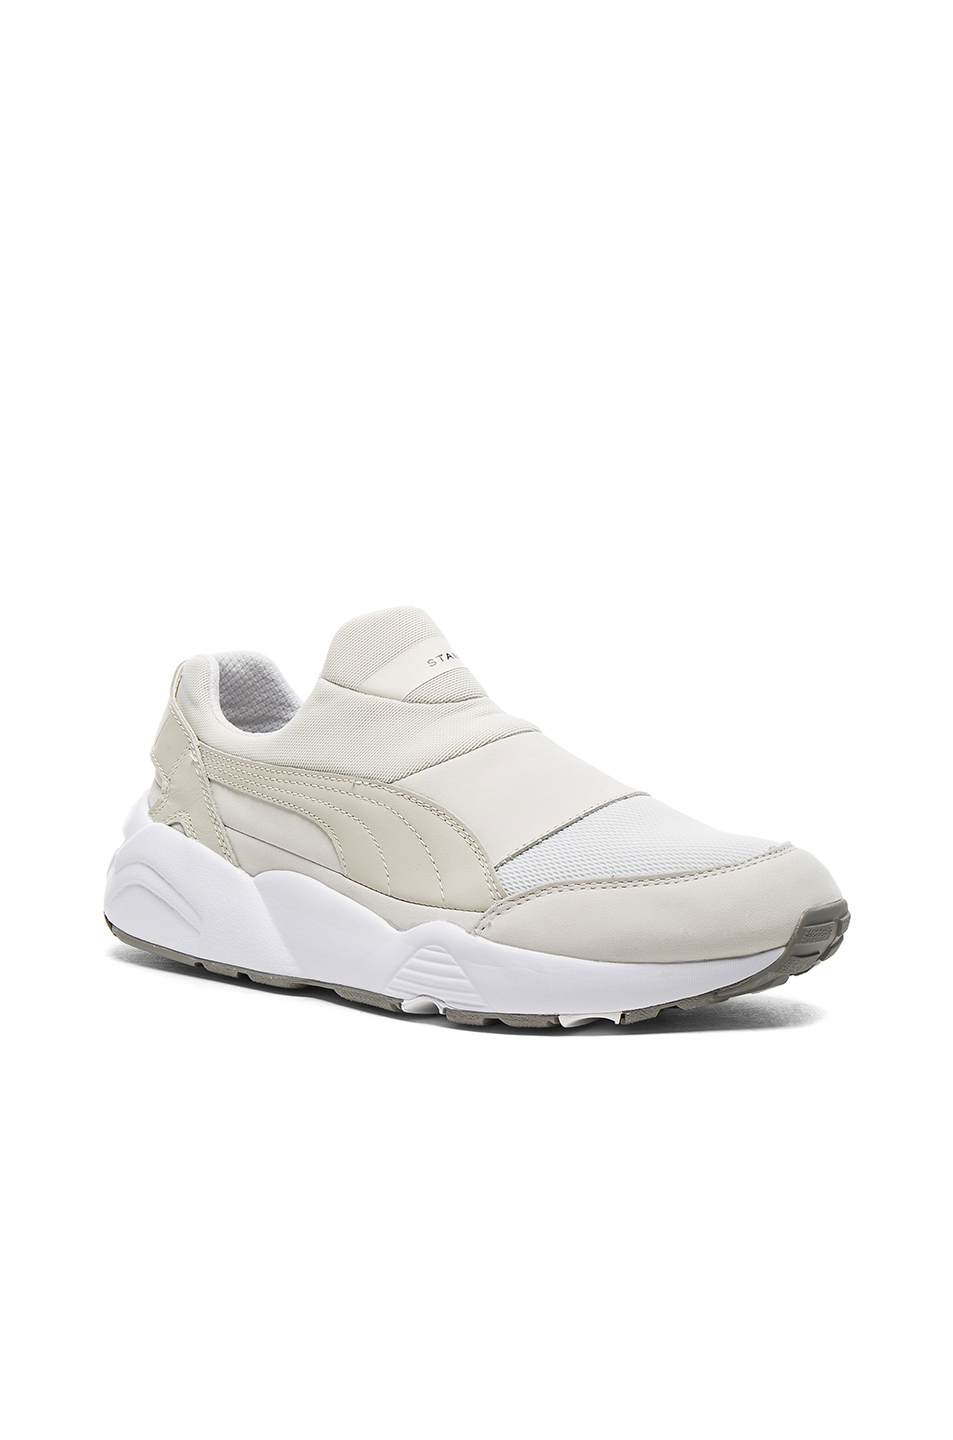 Puma Select x Stampd Trinomic Sock in White